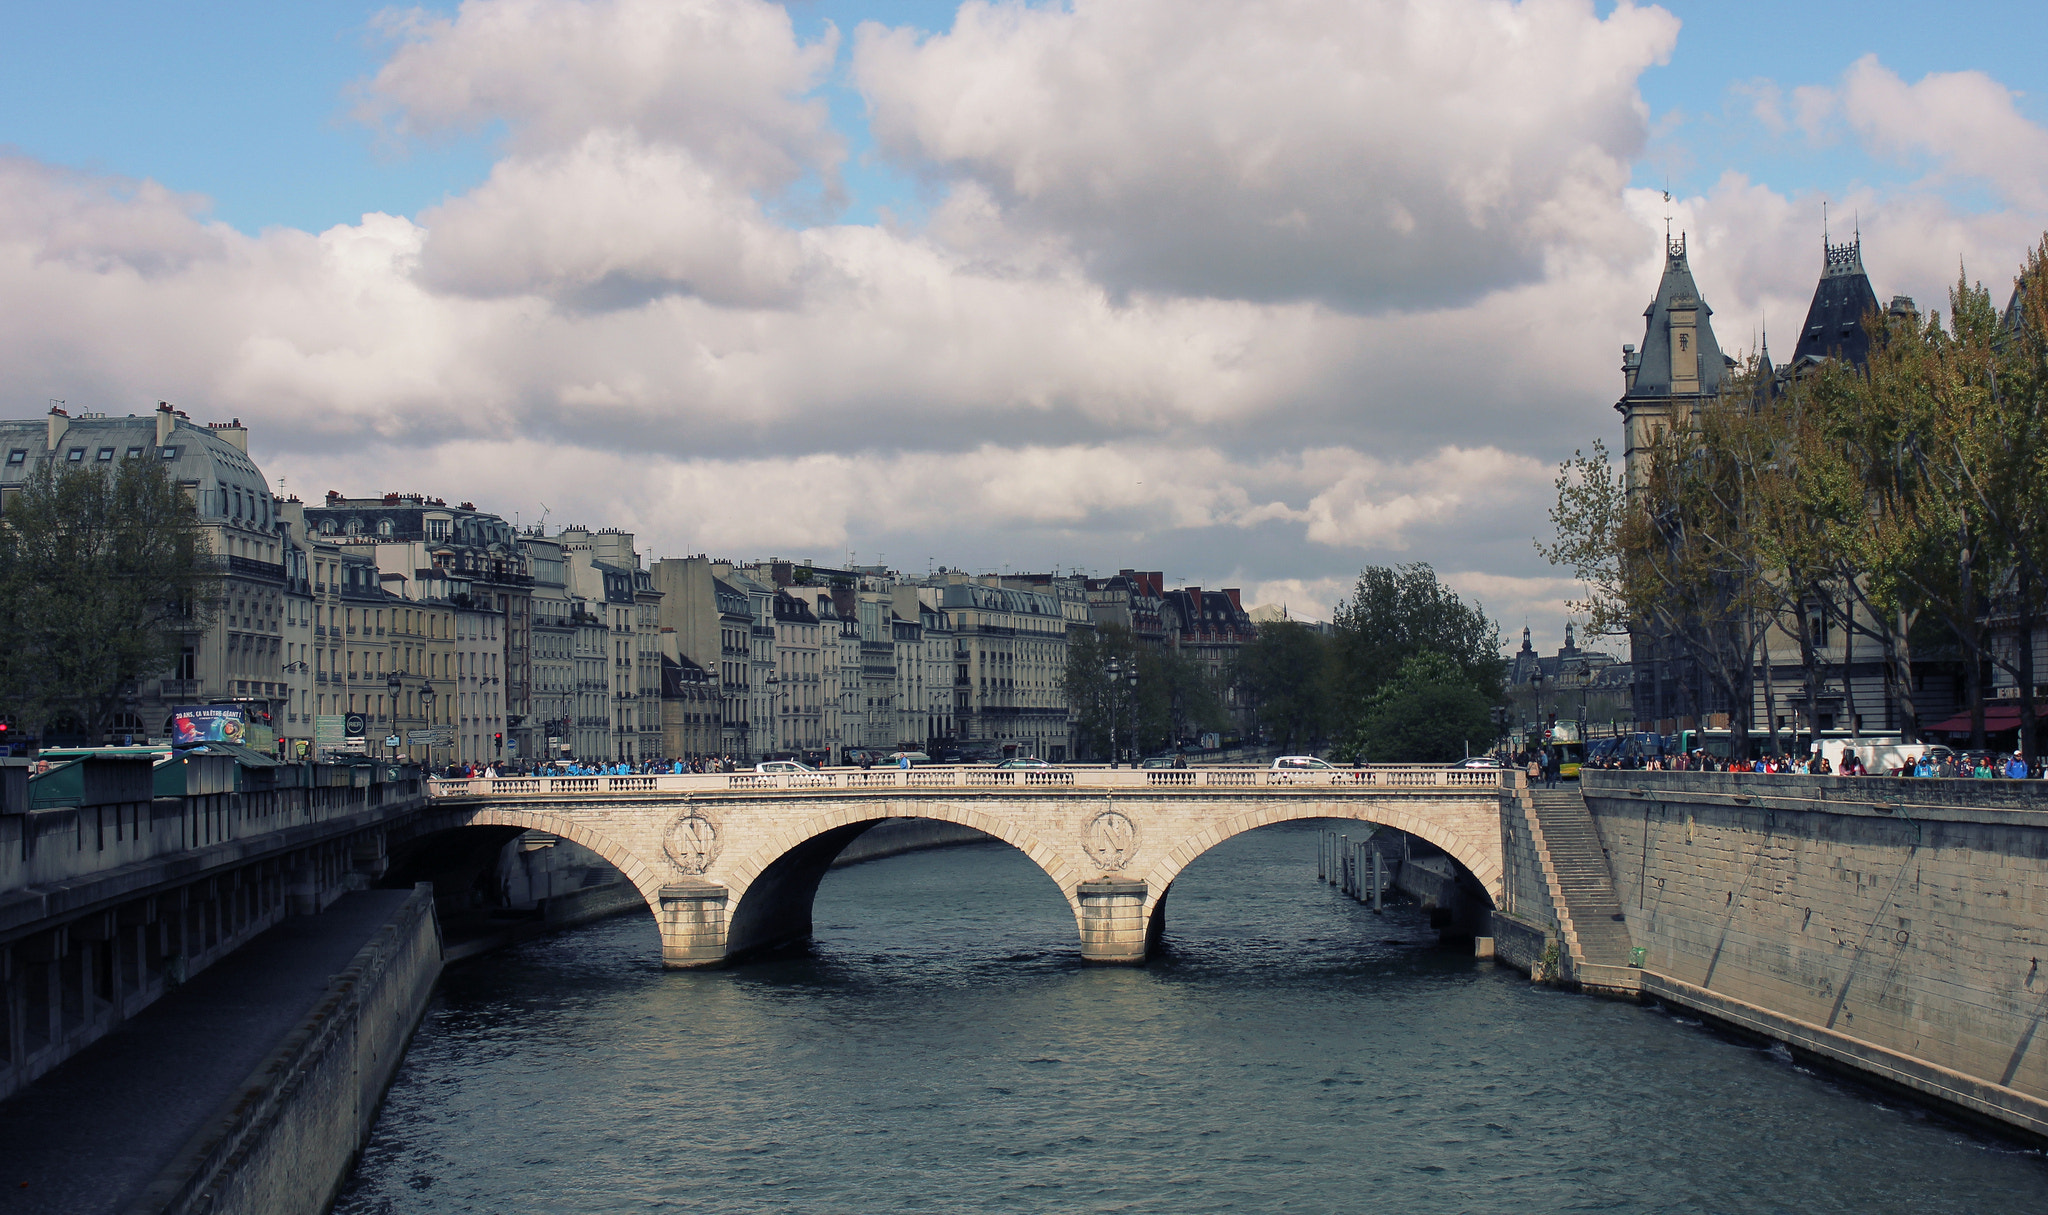 Photograph Bridge Over the Seine by Tyler Lavoie on 500px